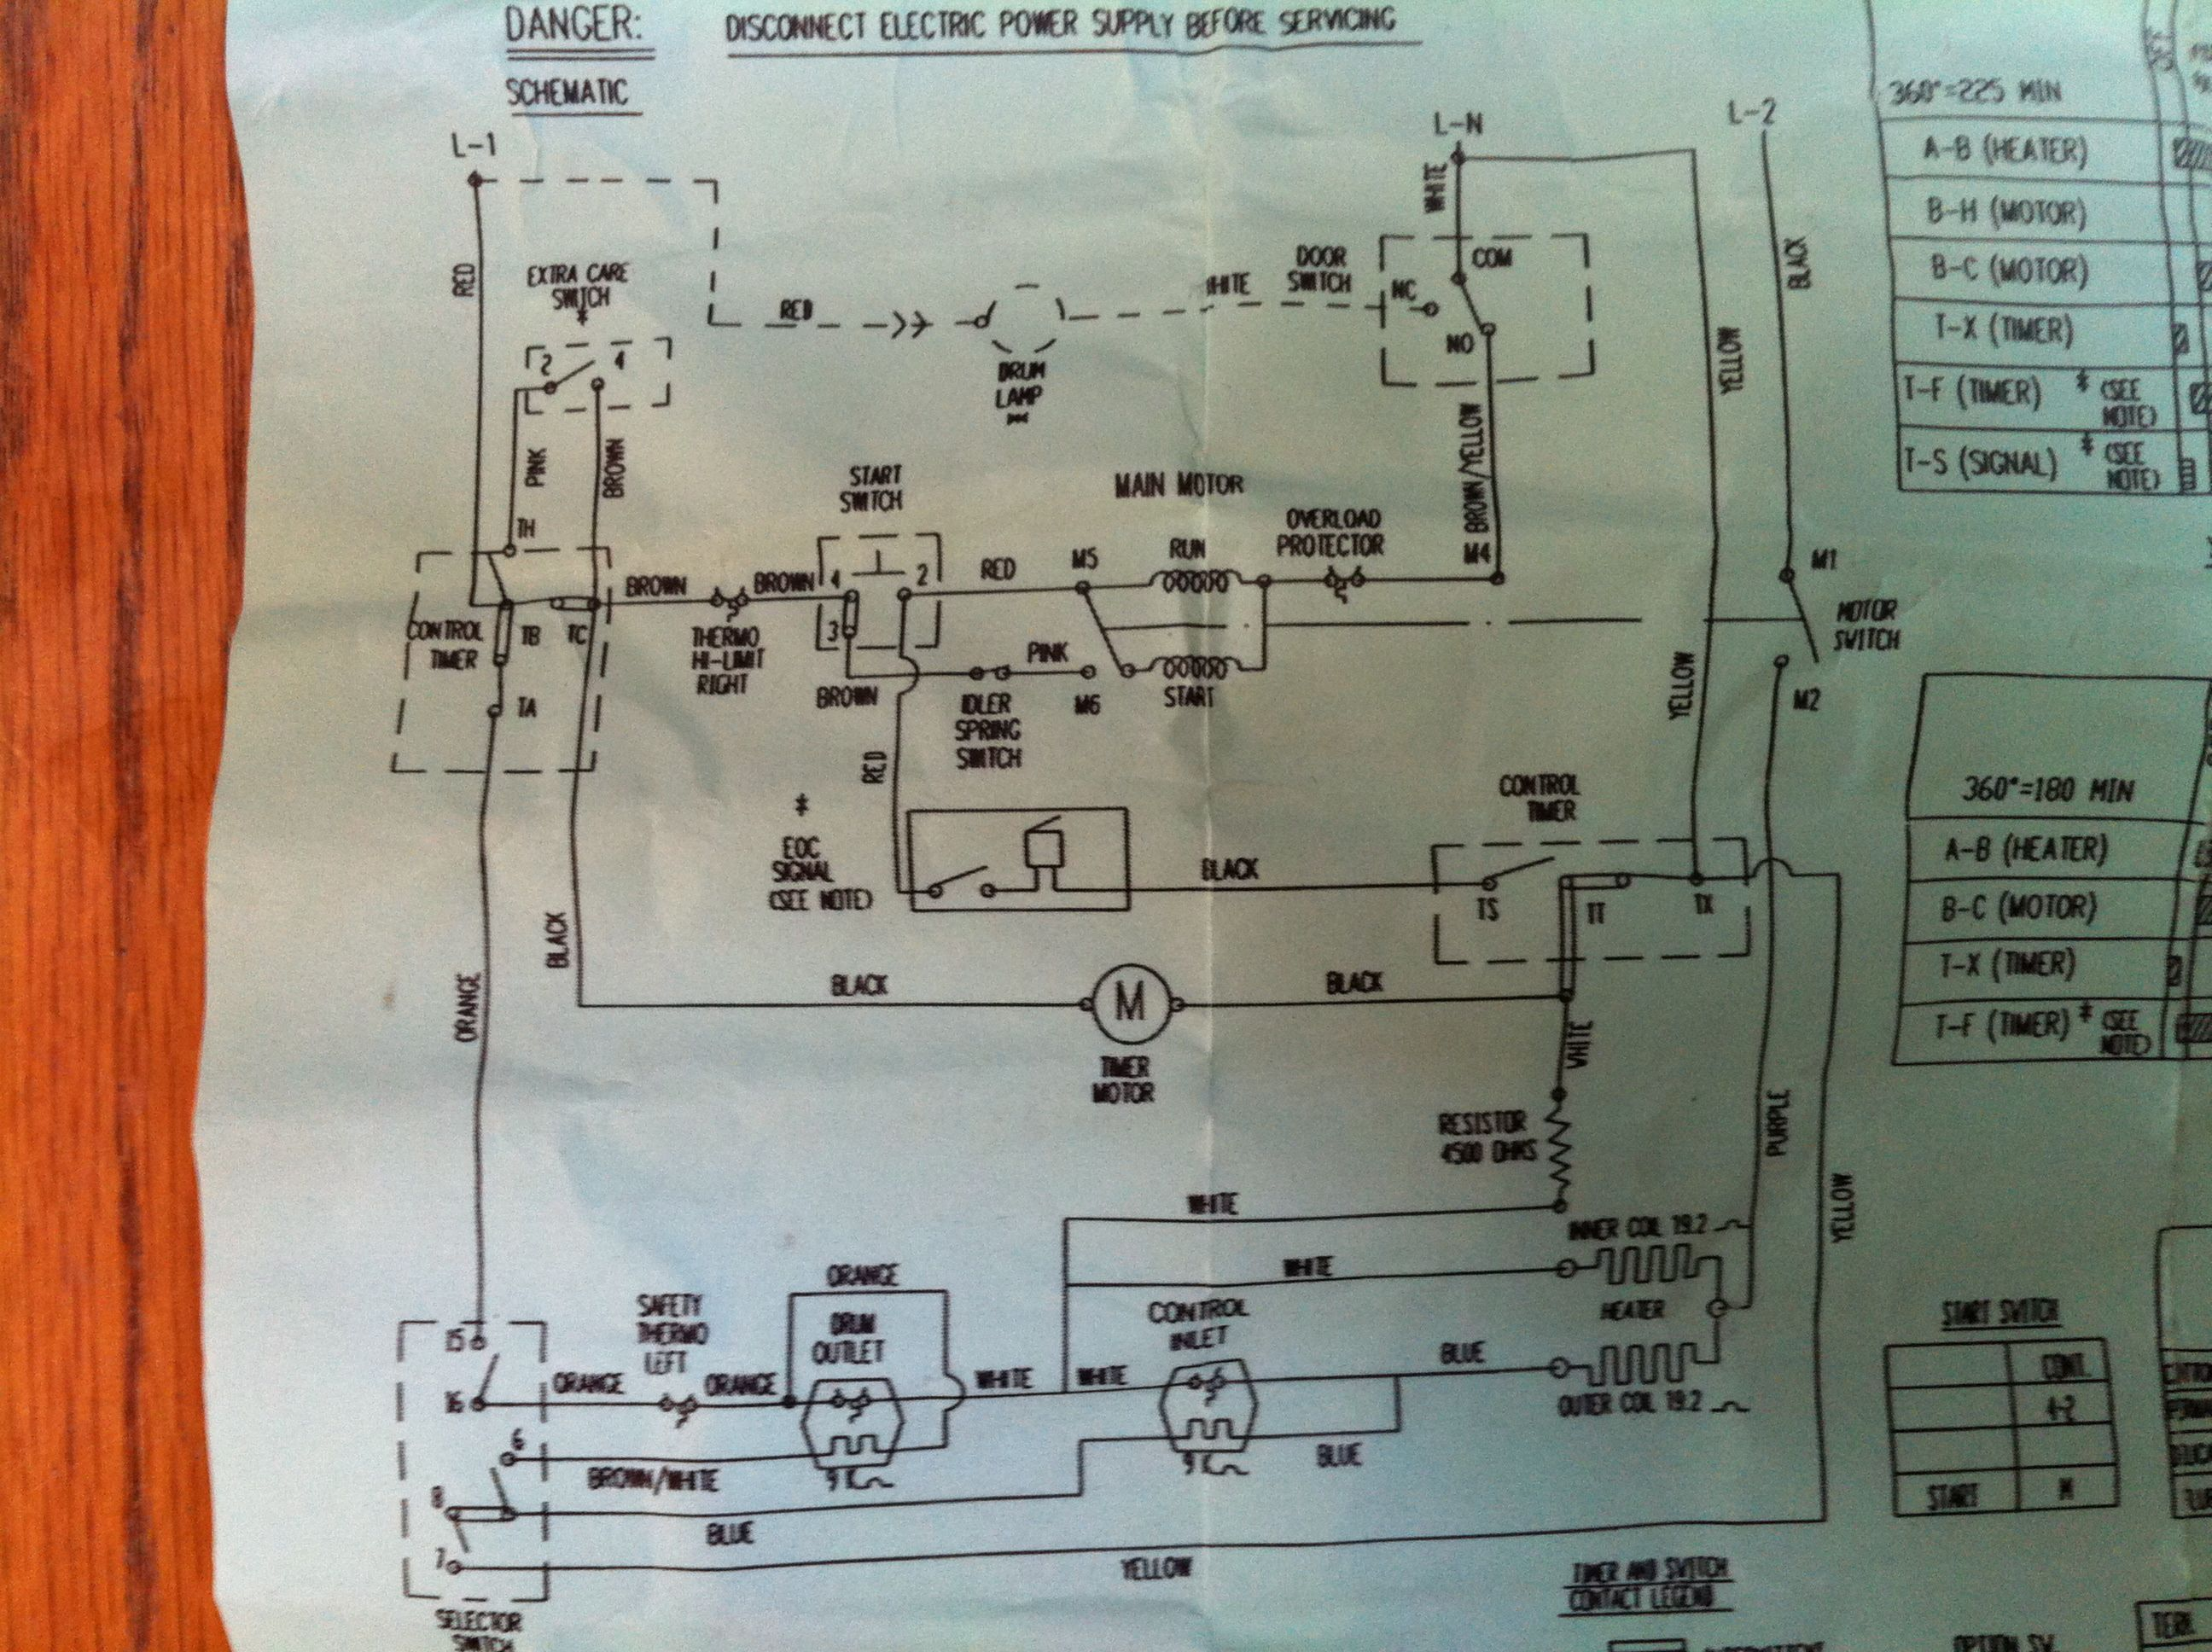 Wiring Diagram on Ge Electric Dryer Parts Diagram